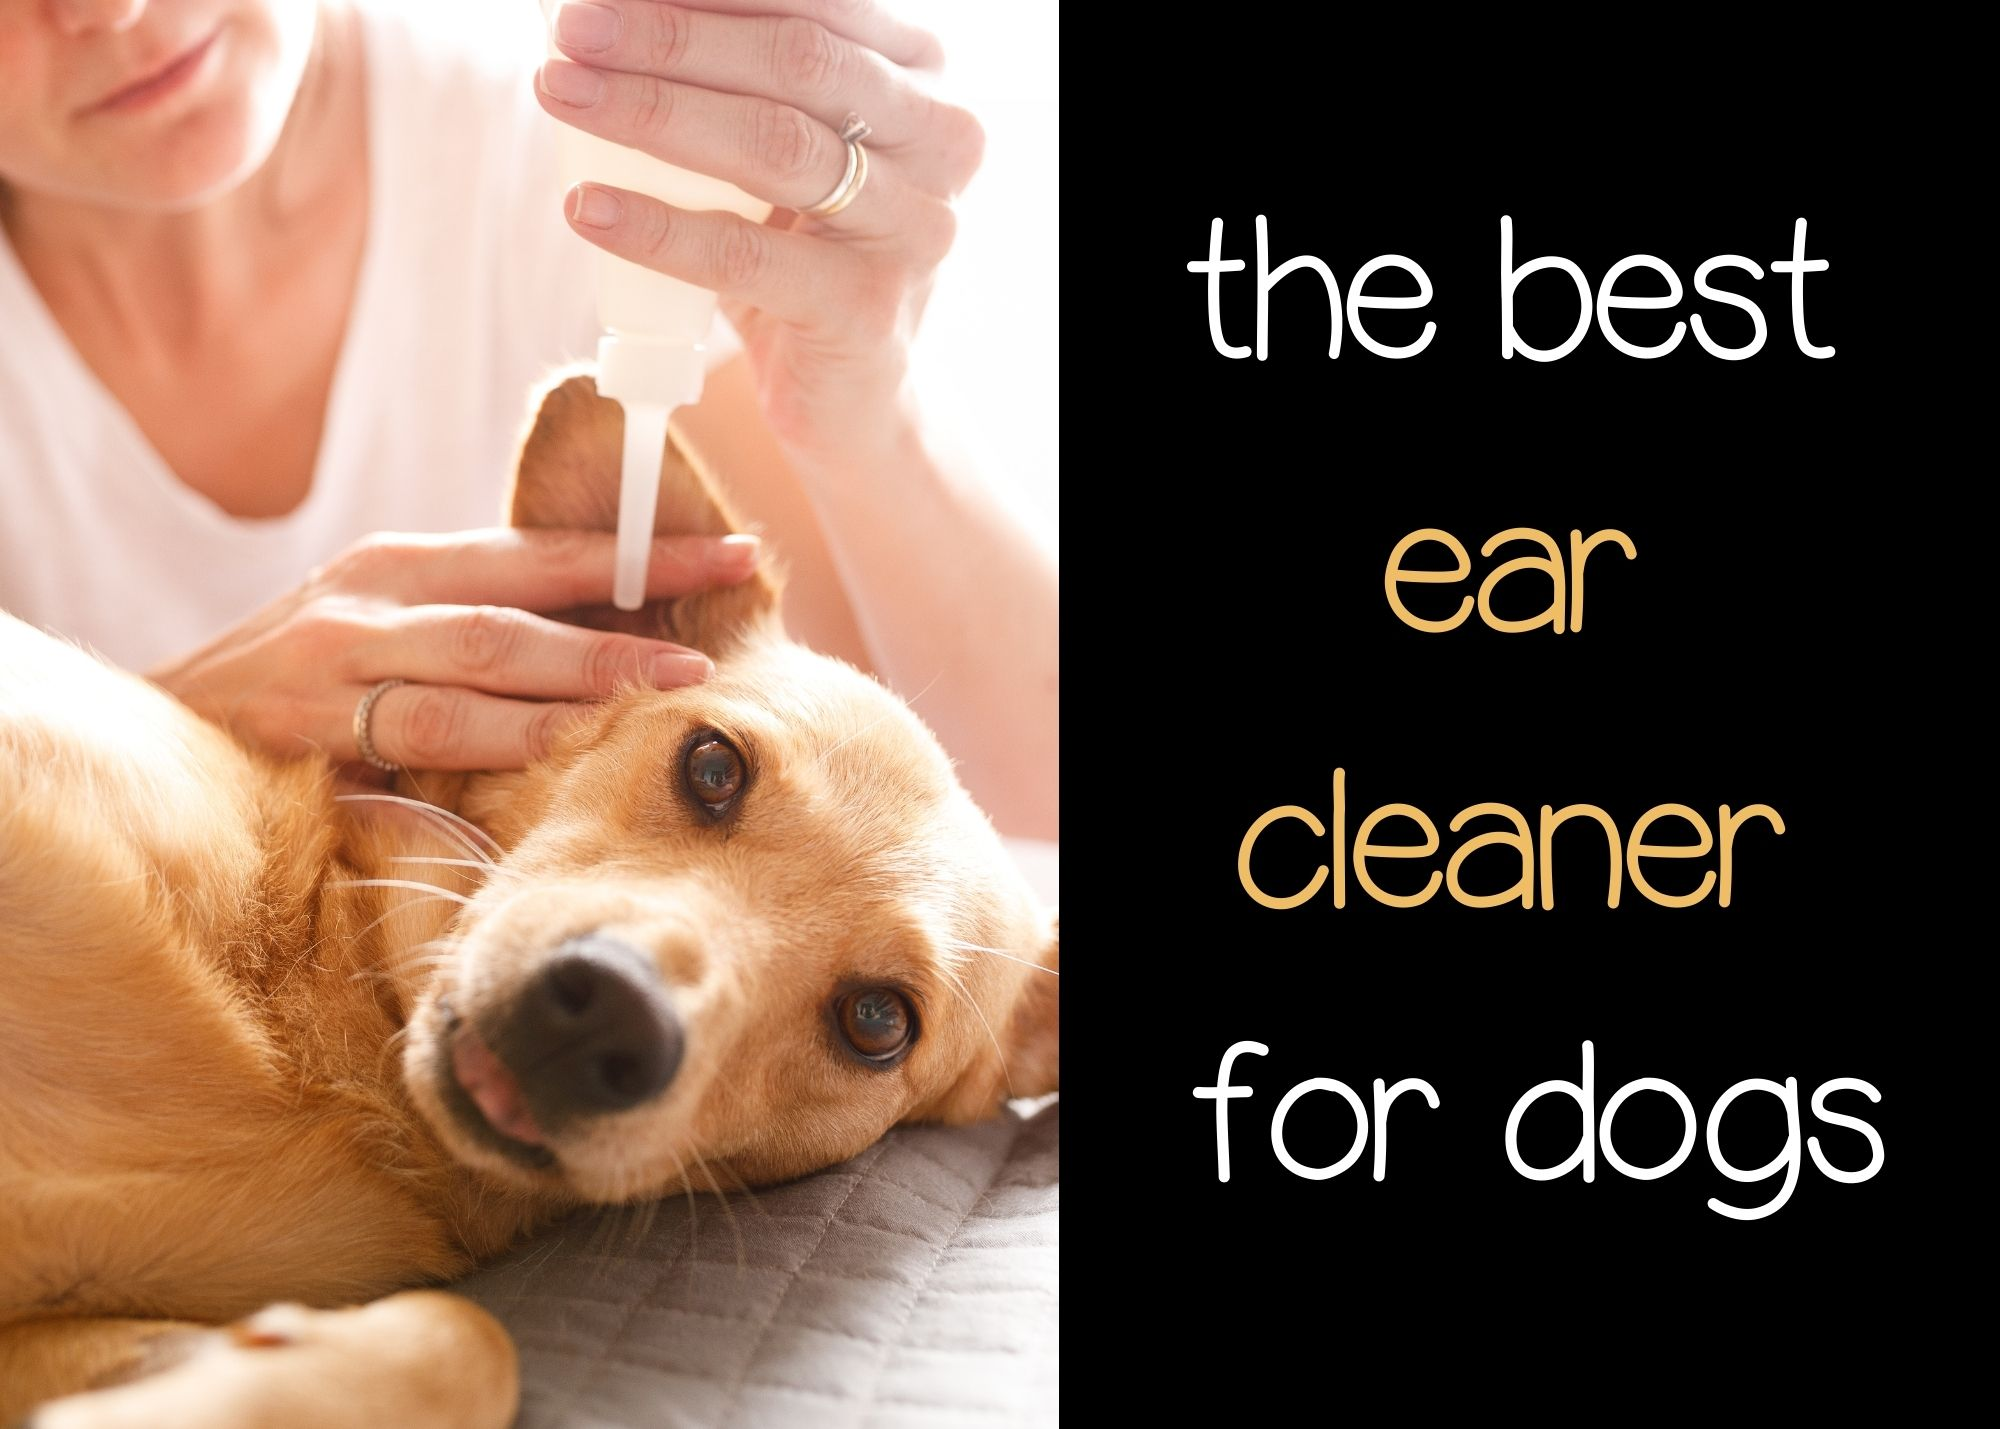 what is the best ear cleaner for dogs?